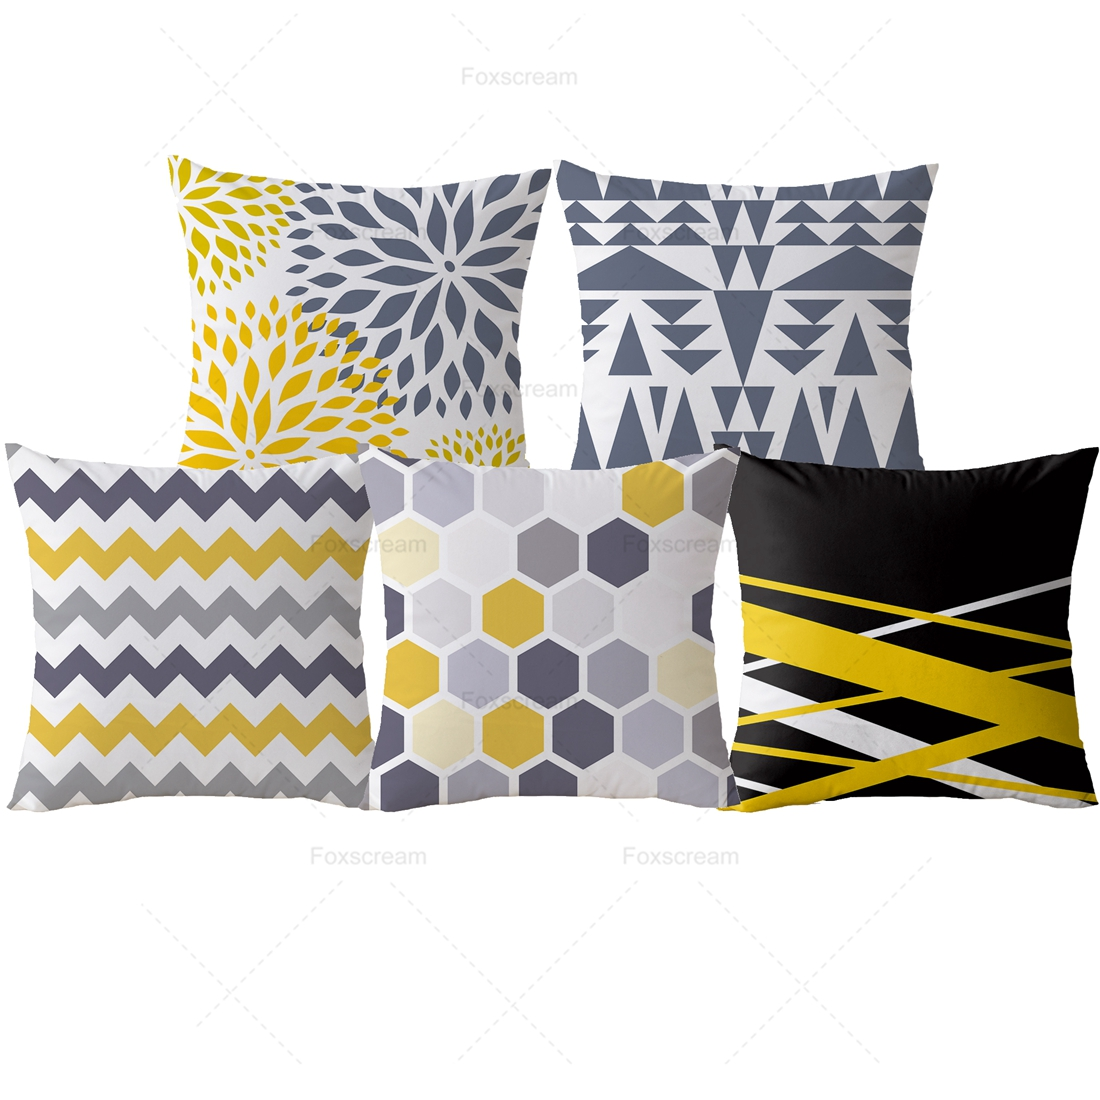 online get cheap gray throw pillows aliexpresscom  alibaba group - yellow decorative throw pillows case gray geometric cushion cover homedecor nordic velvet chair couch pillowcase